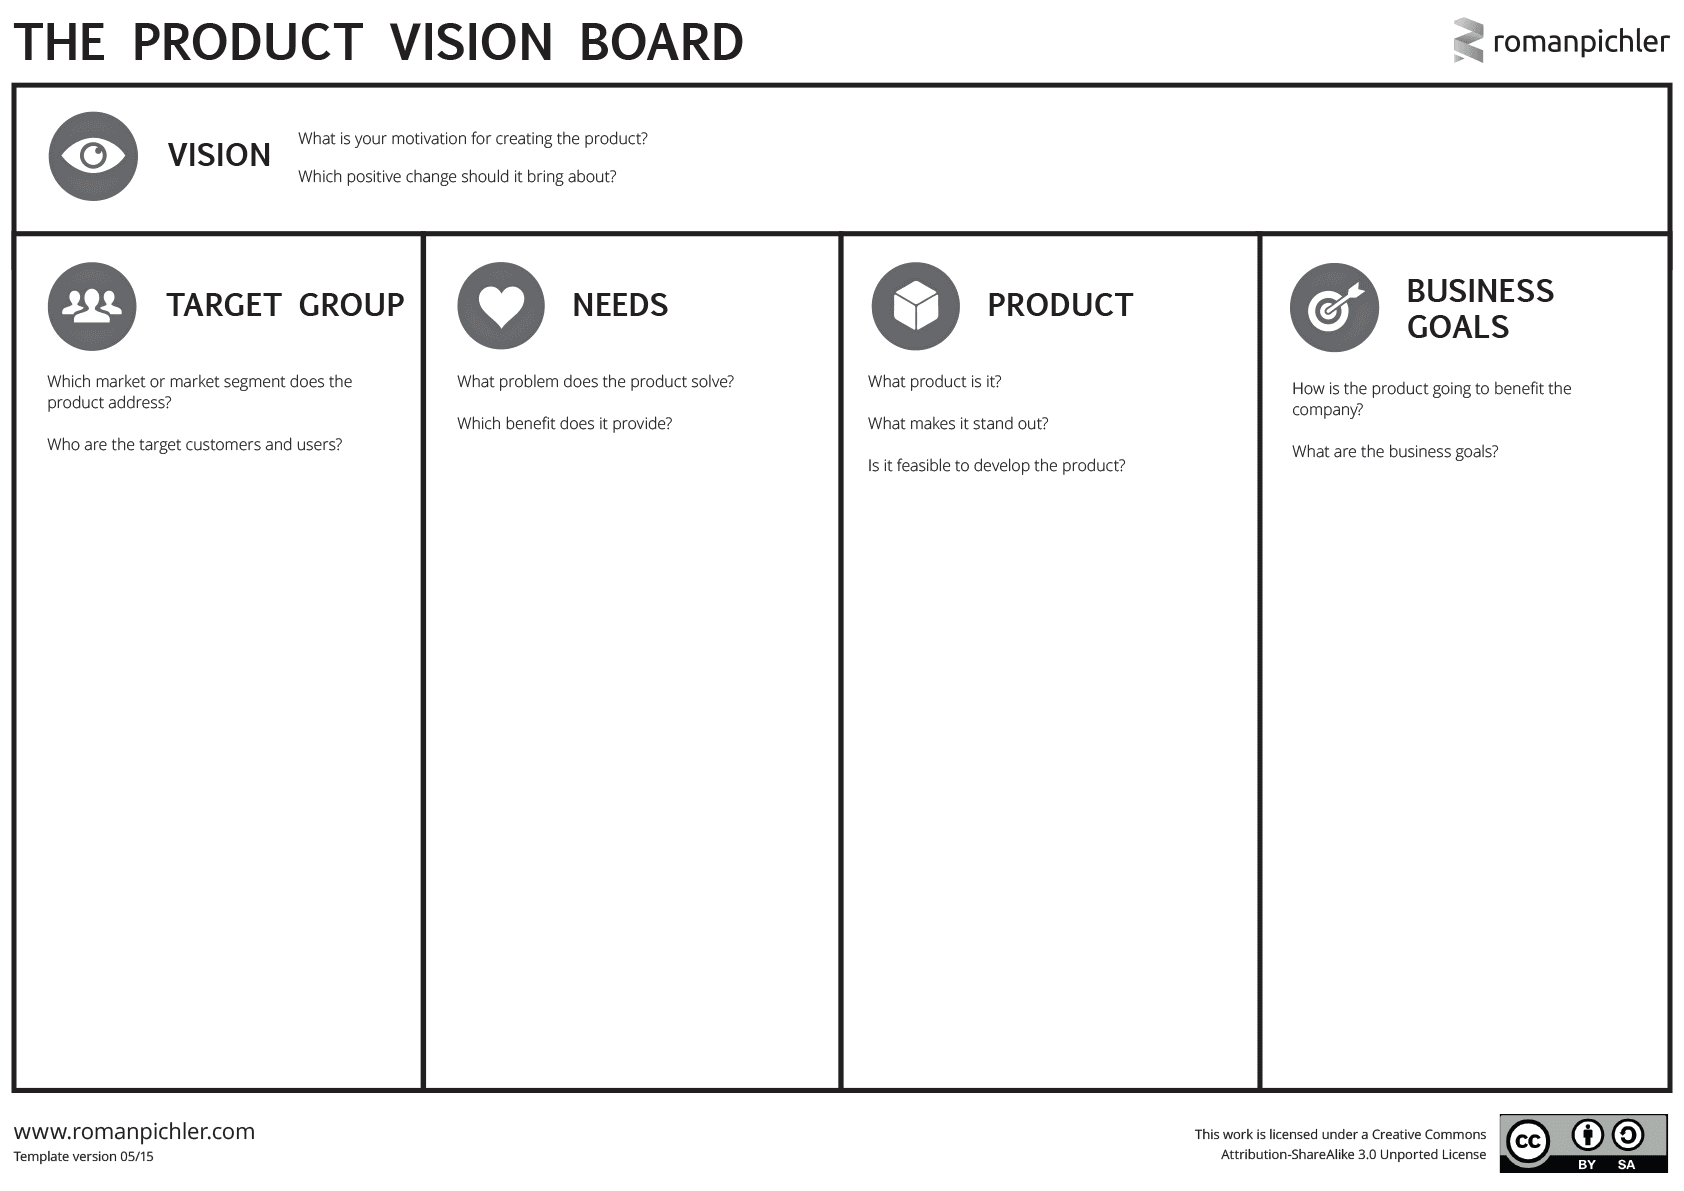 Product Vision Board Template by Roman Pichler